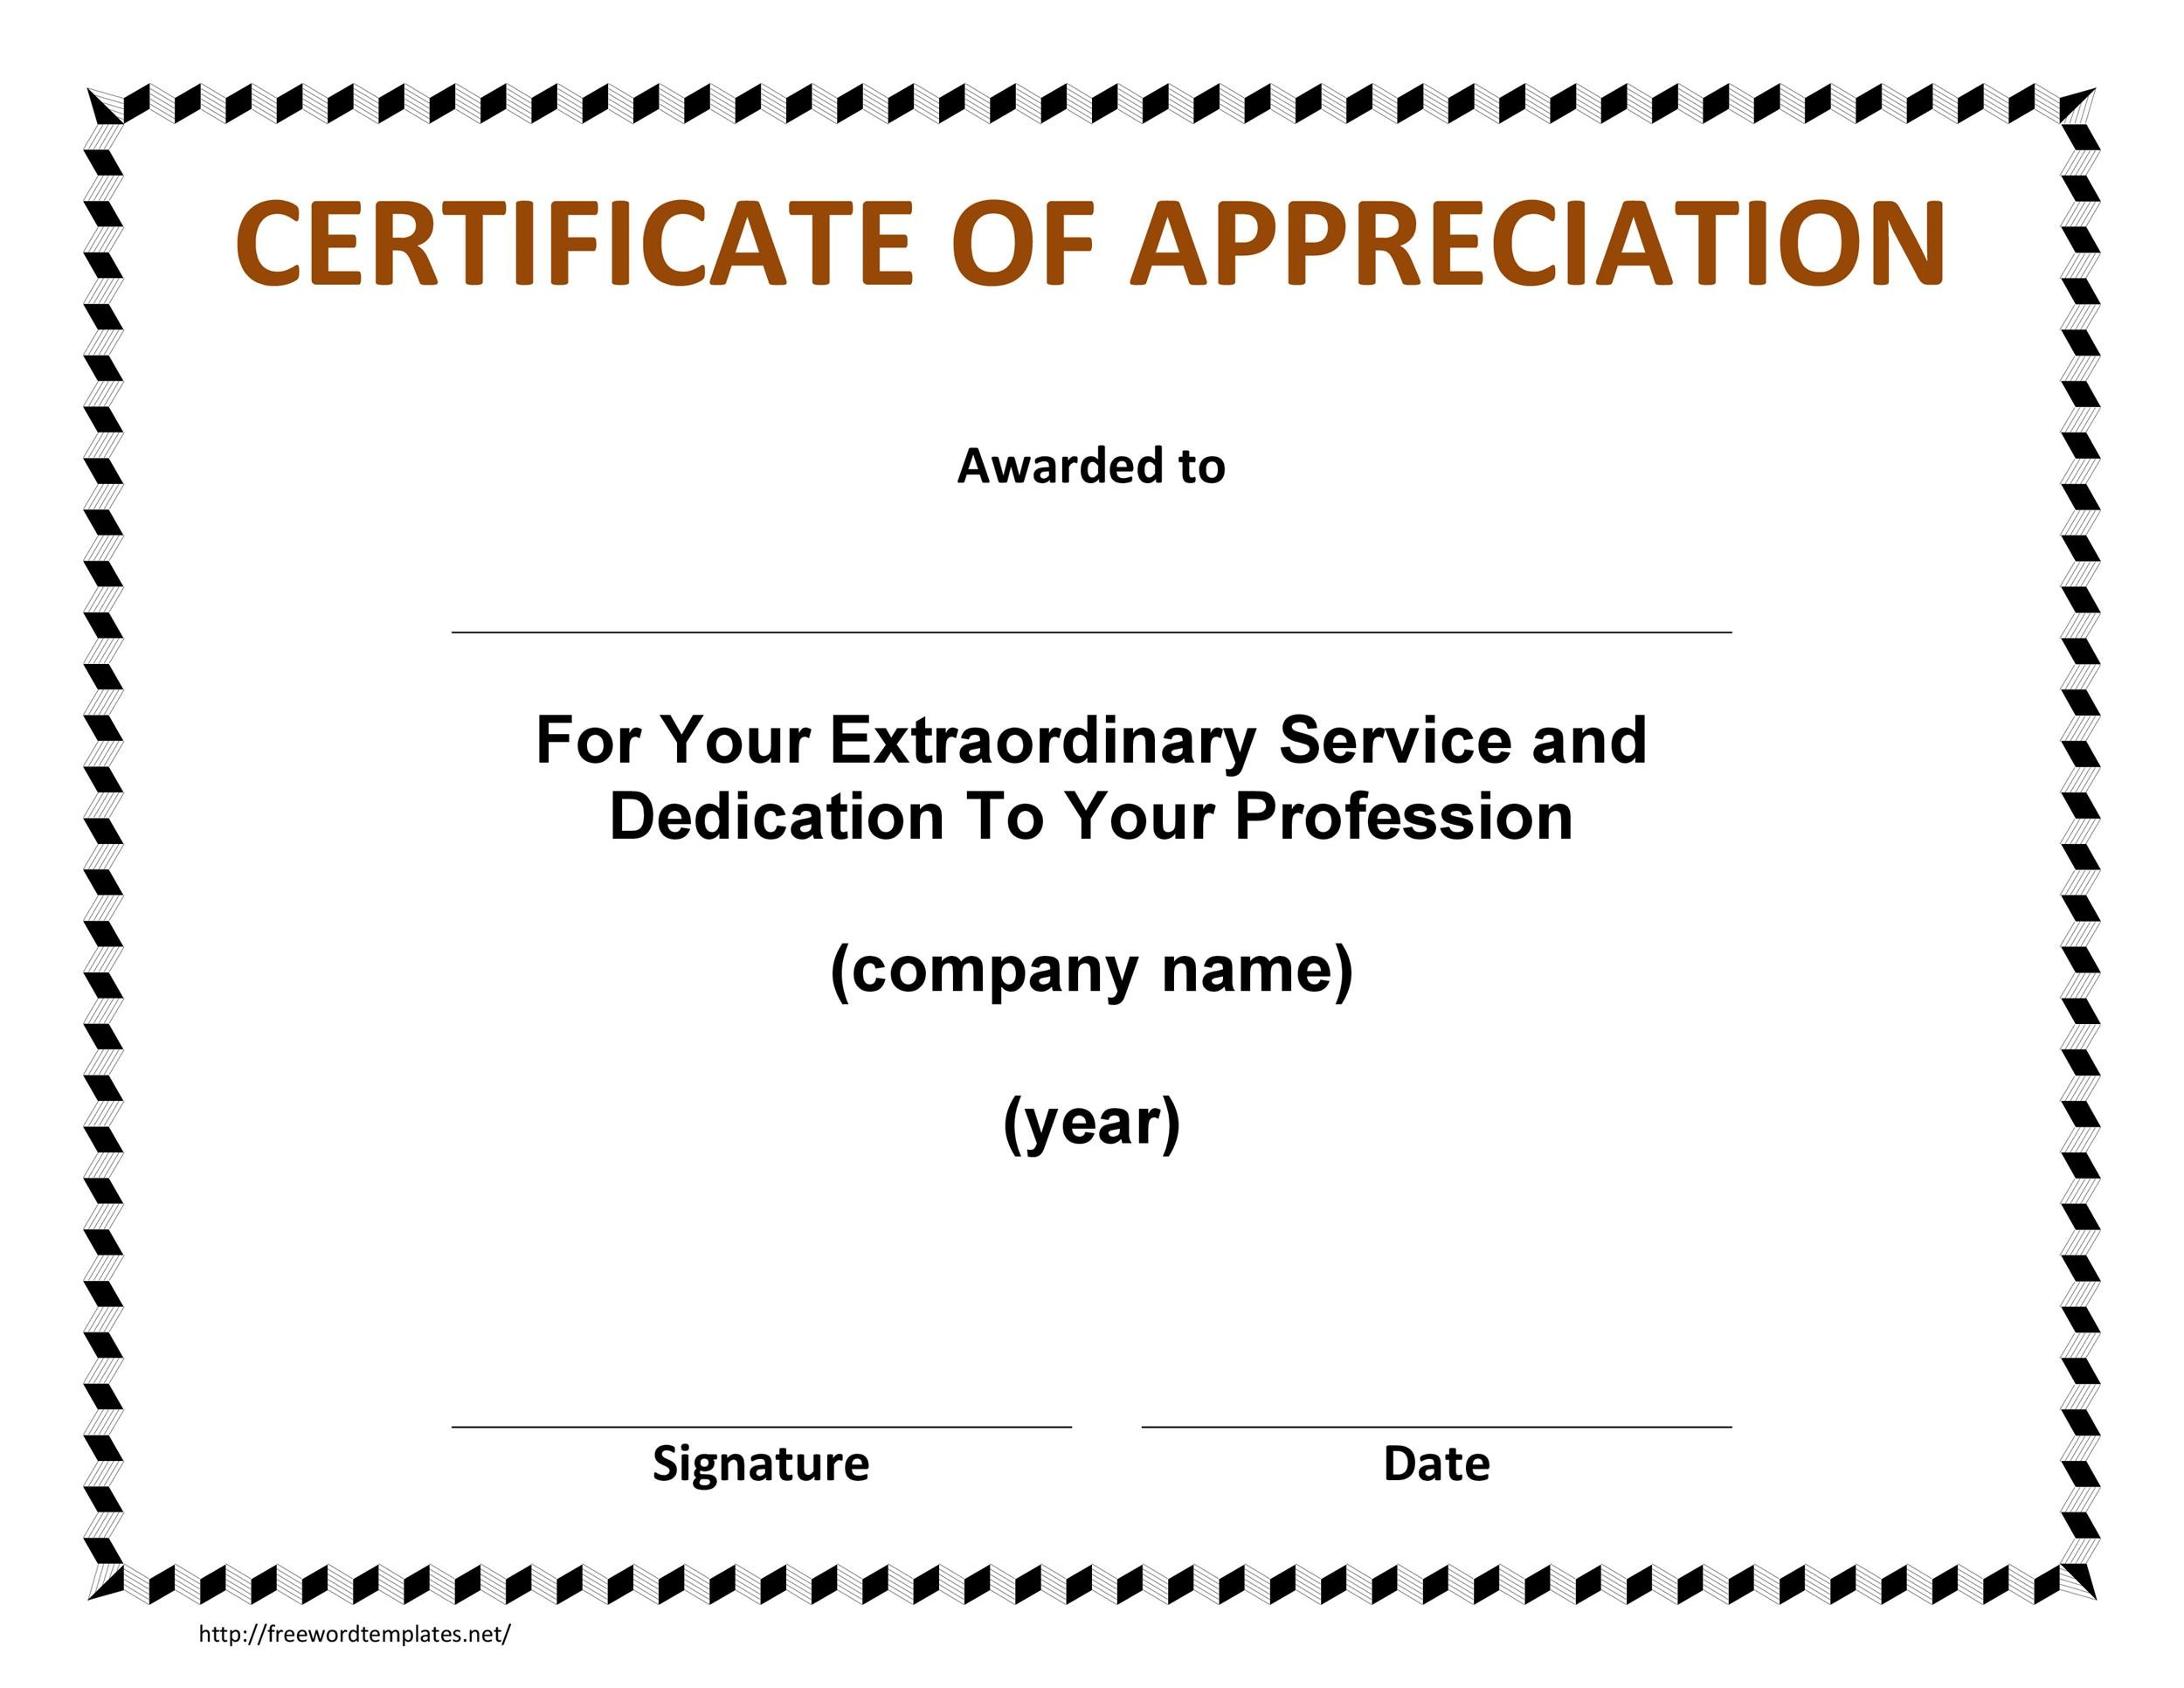 30 free certificate of appreciation templates and letters printable certificate of appreciation 04 spiritdancerdesigns Image collections